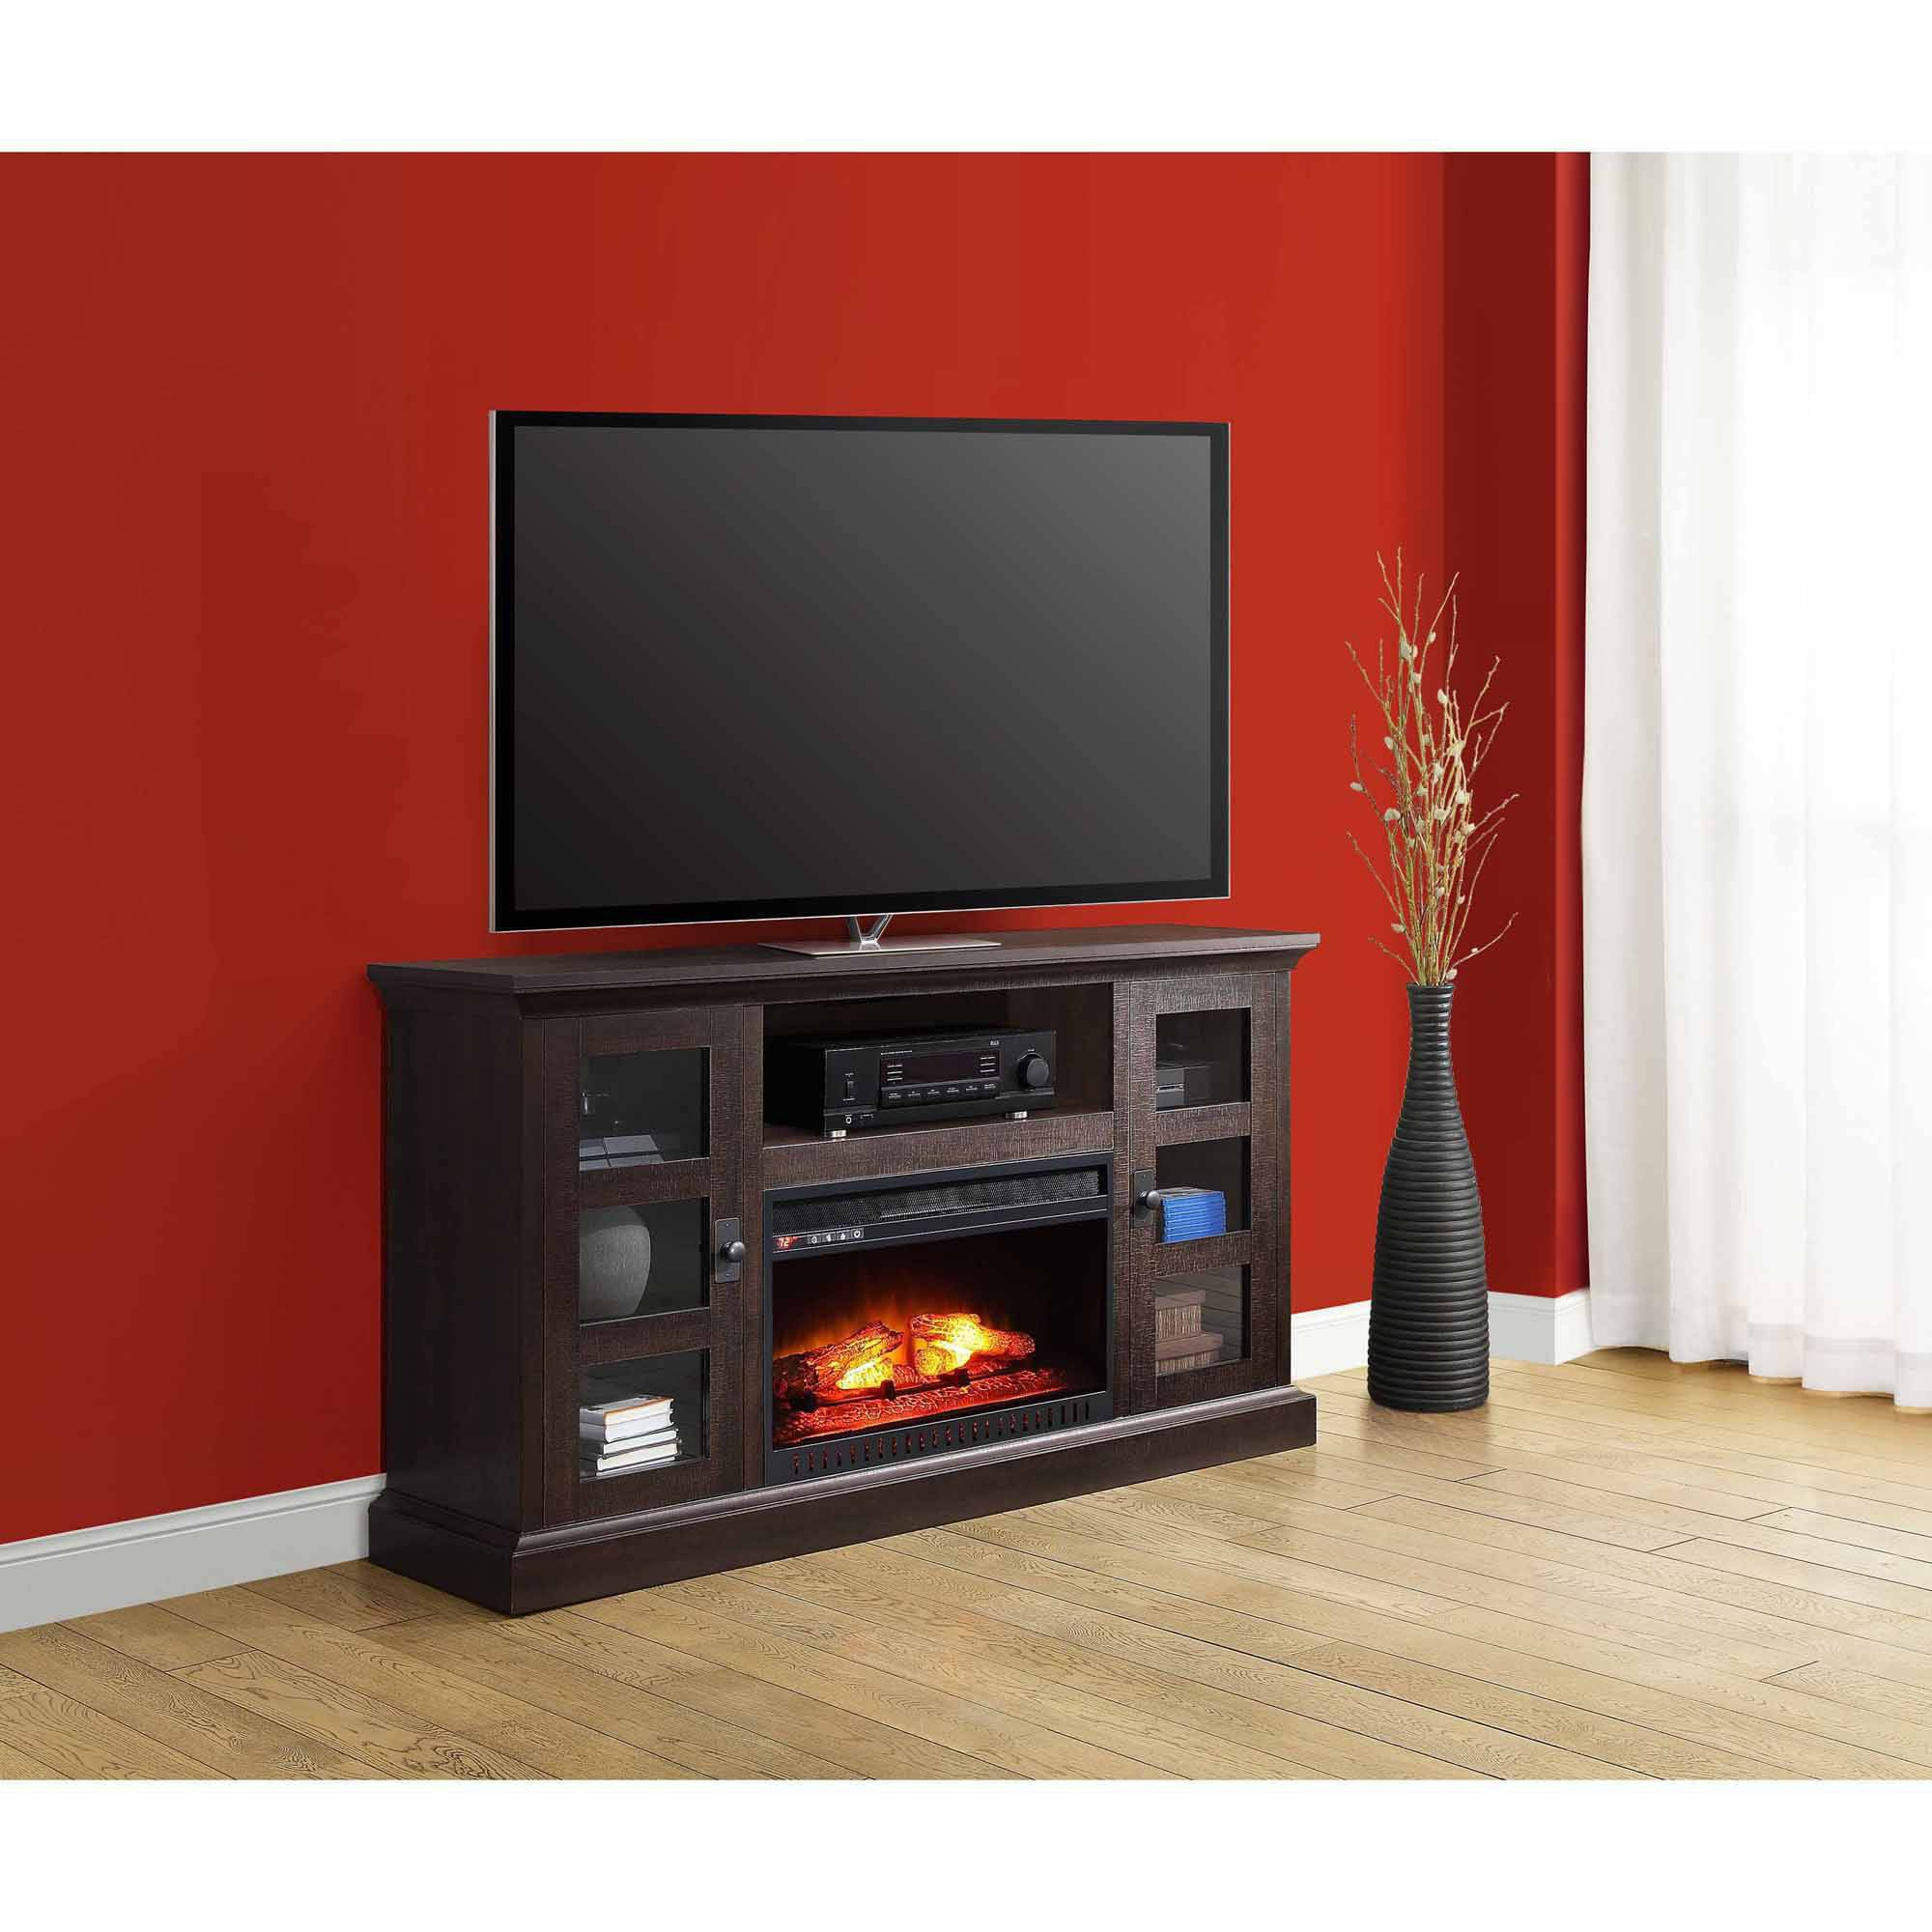 product southern amazon cartwright in reviews mission image electric best rated fireplaces convertible customer pcr insert enterprises fireplace oak helpful